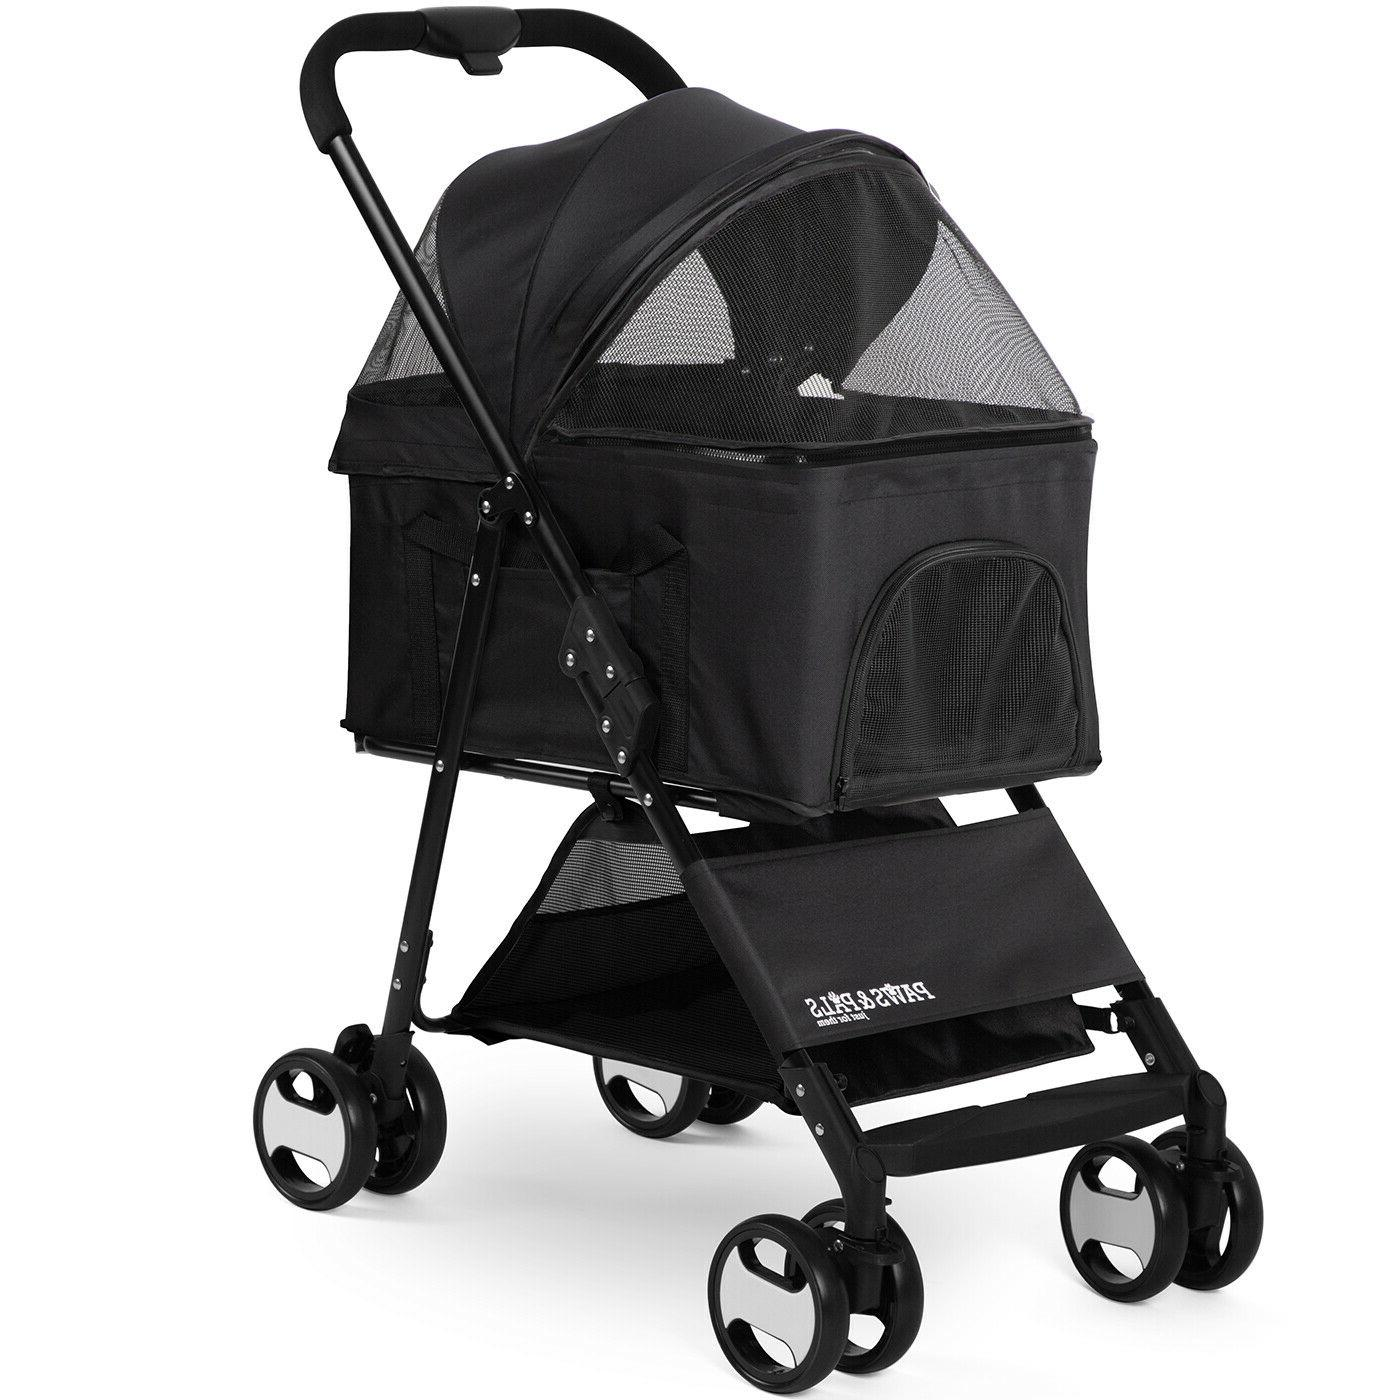 dog stroller pet travel carriage for dogs